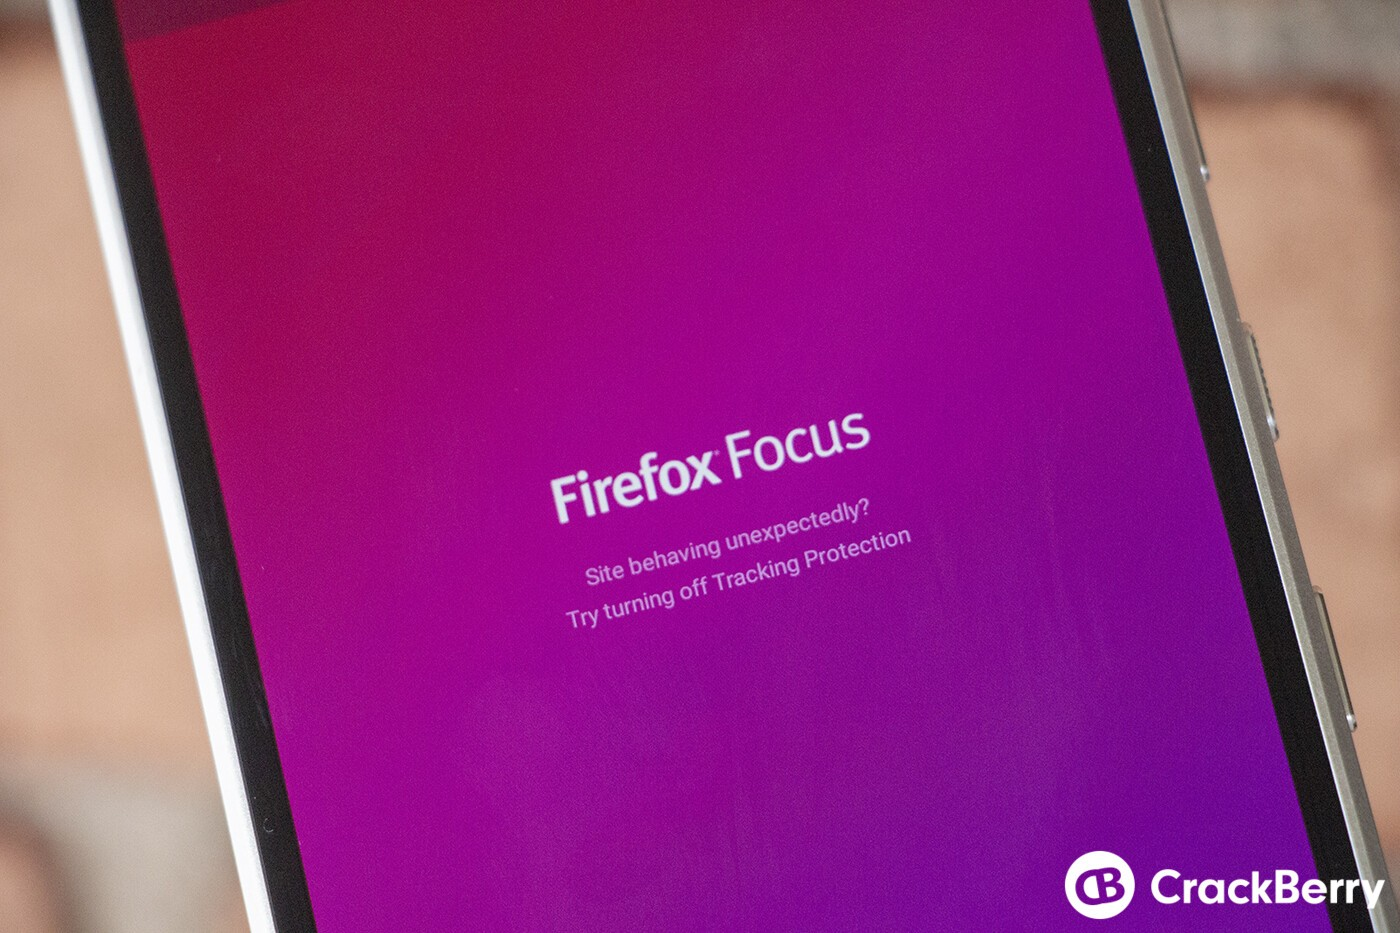 Firefox Focus for Android adds support for safe browsing